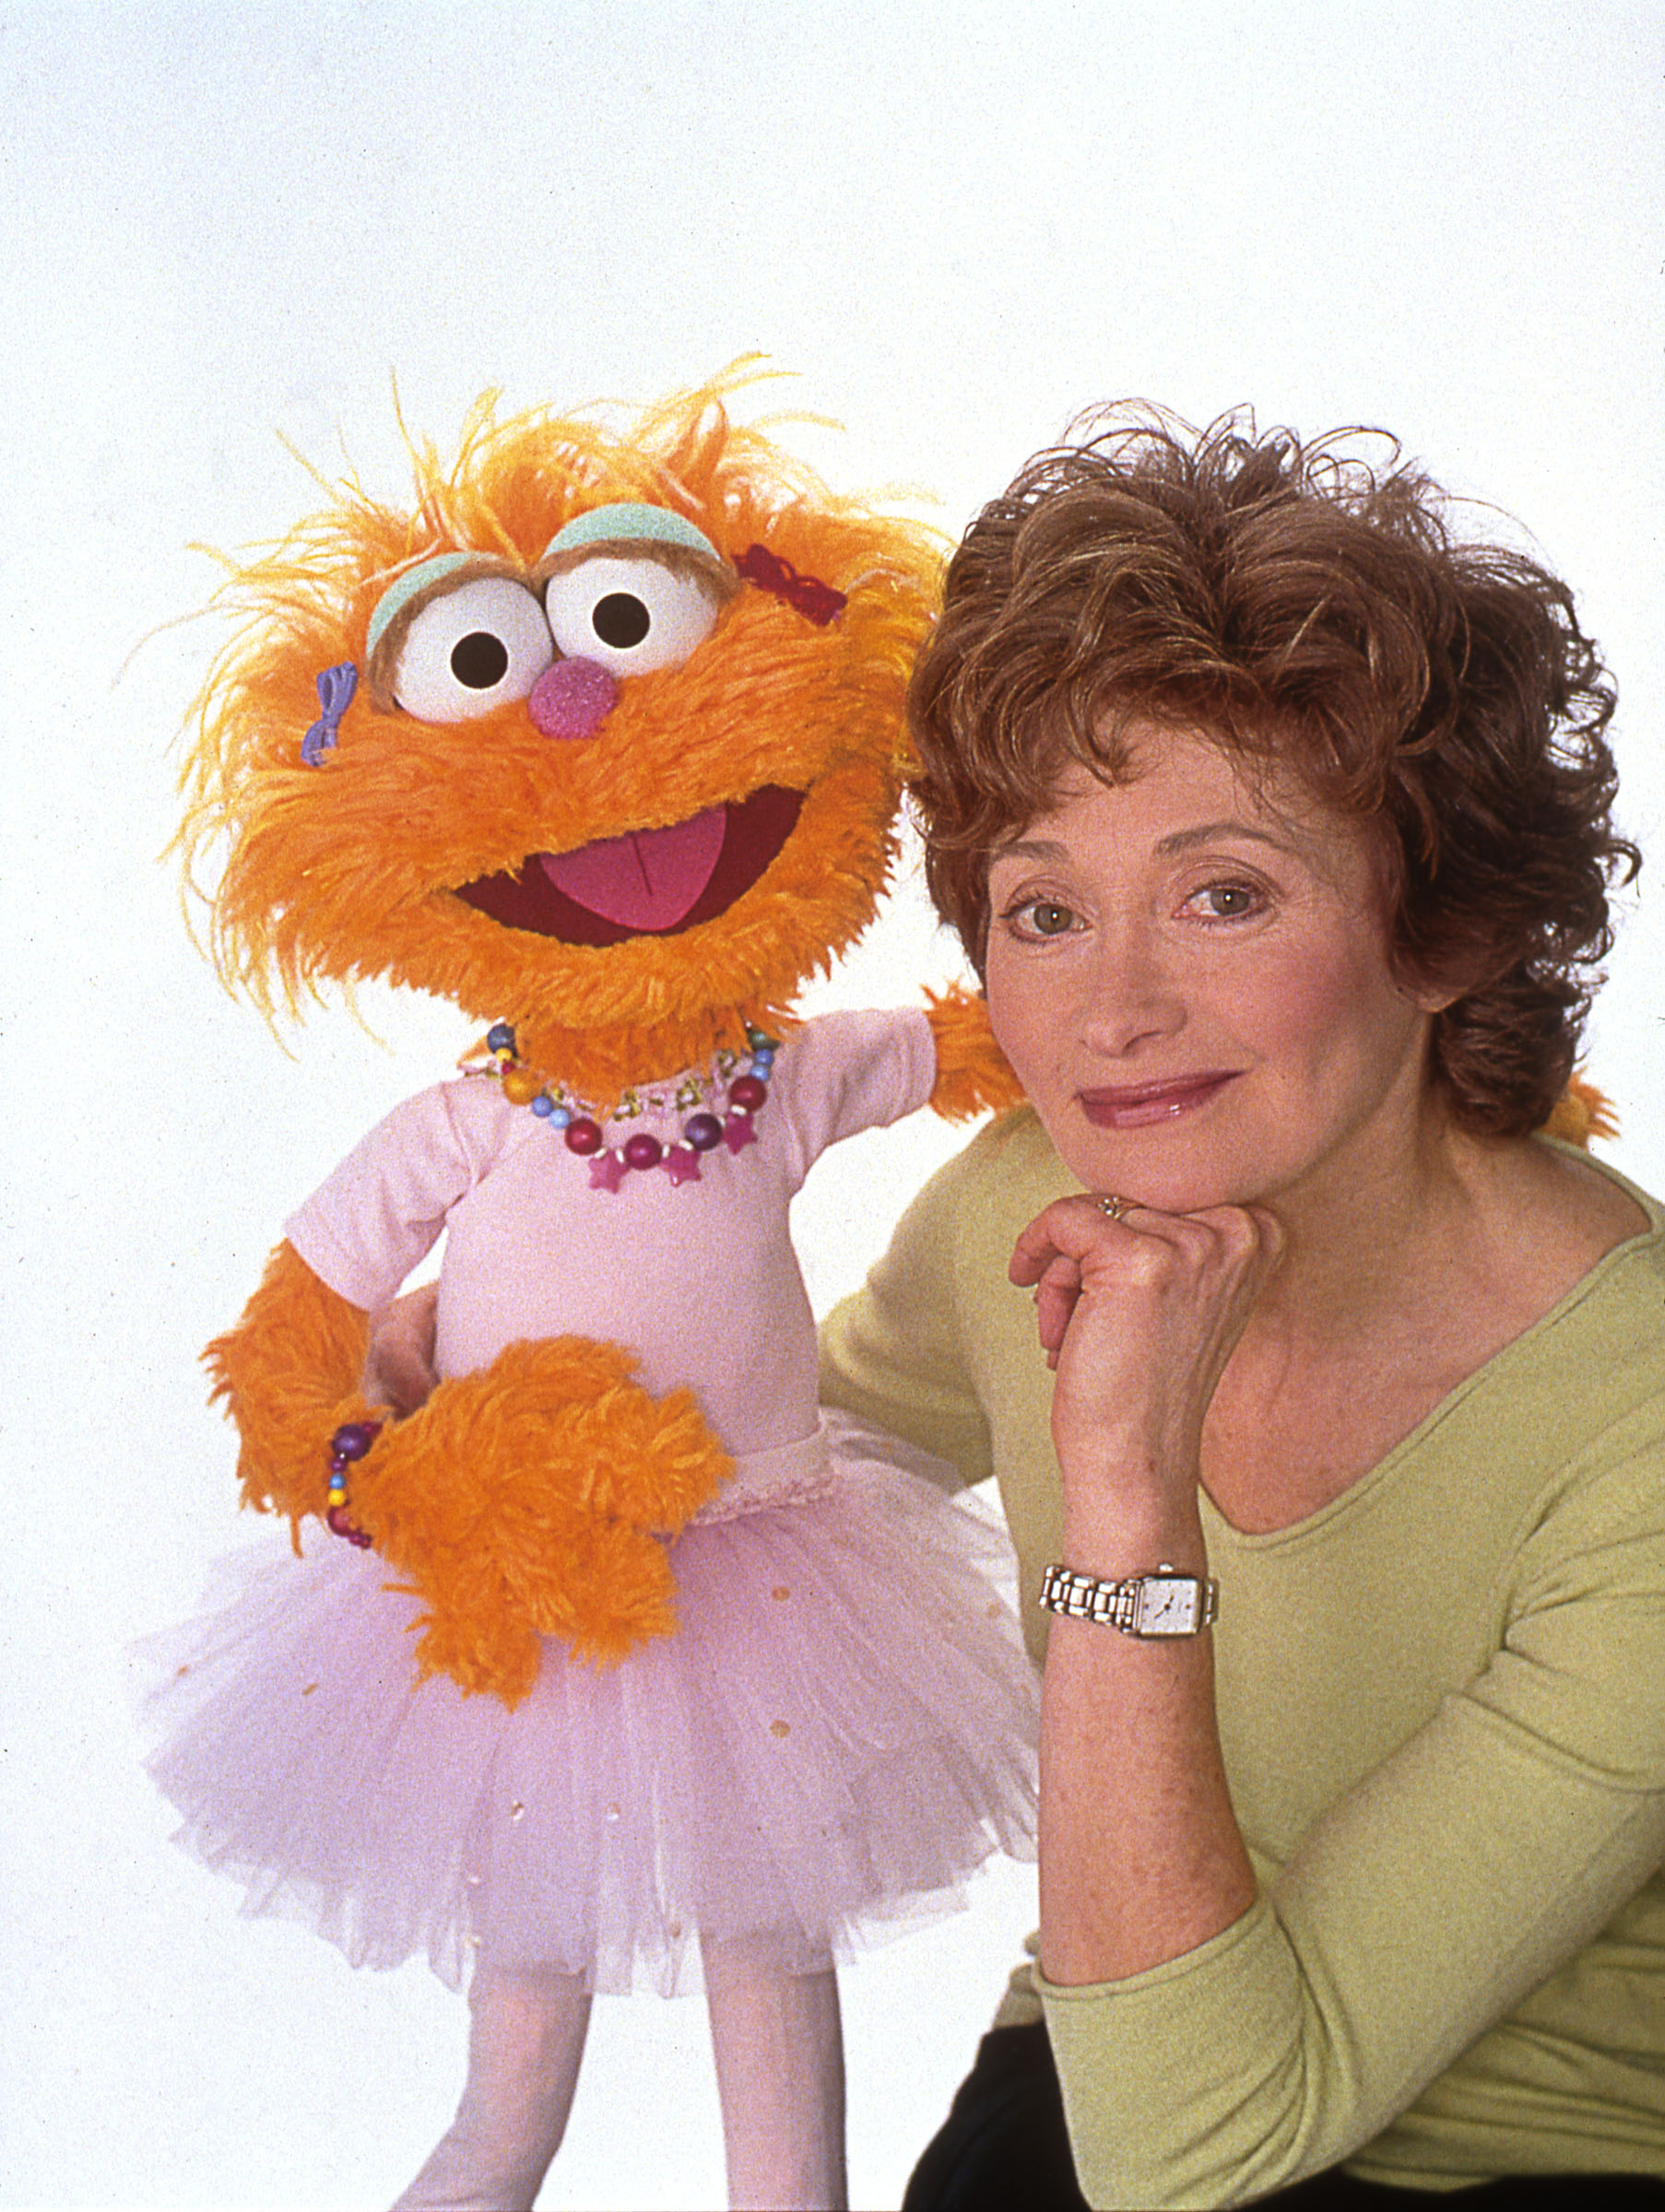 Caption: Five-time Emmy Award winner Fran Brill, the first woman hired by Jim Henson for Sesame Street (seen here with Zoe) is retiring after 42 years , Credit: Jim Henson Legacy